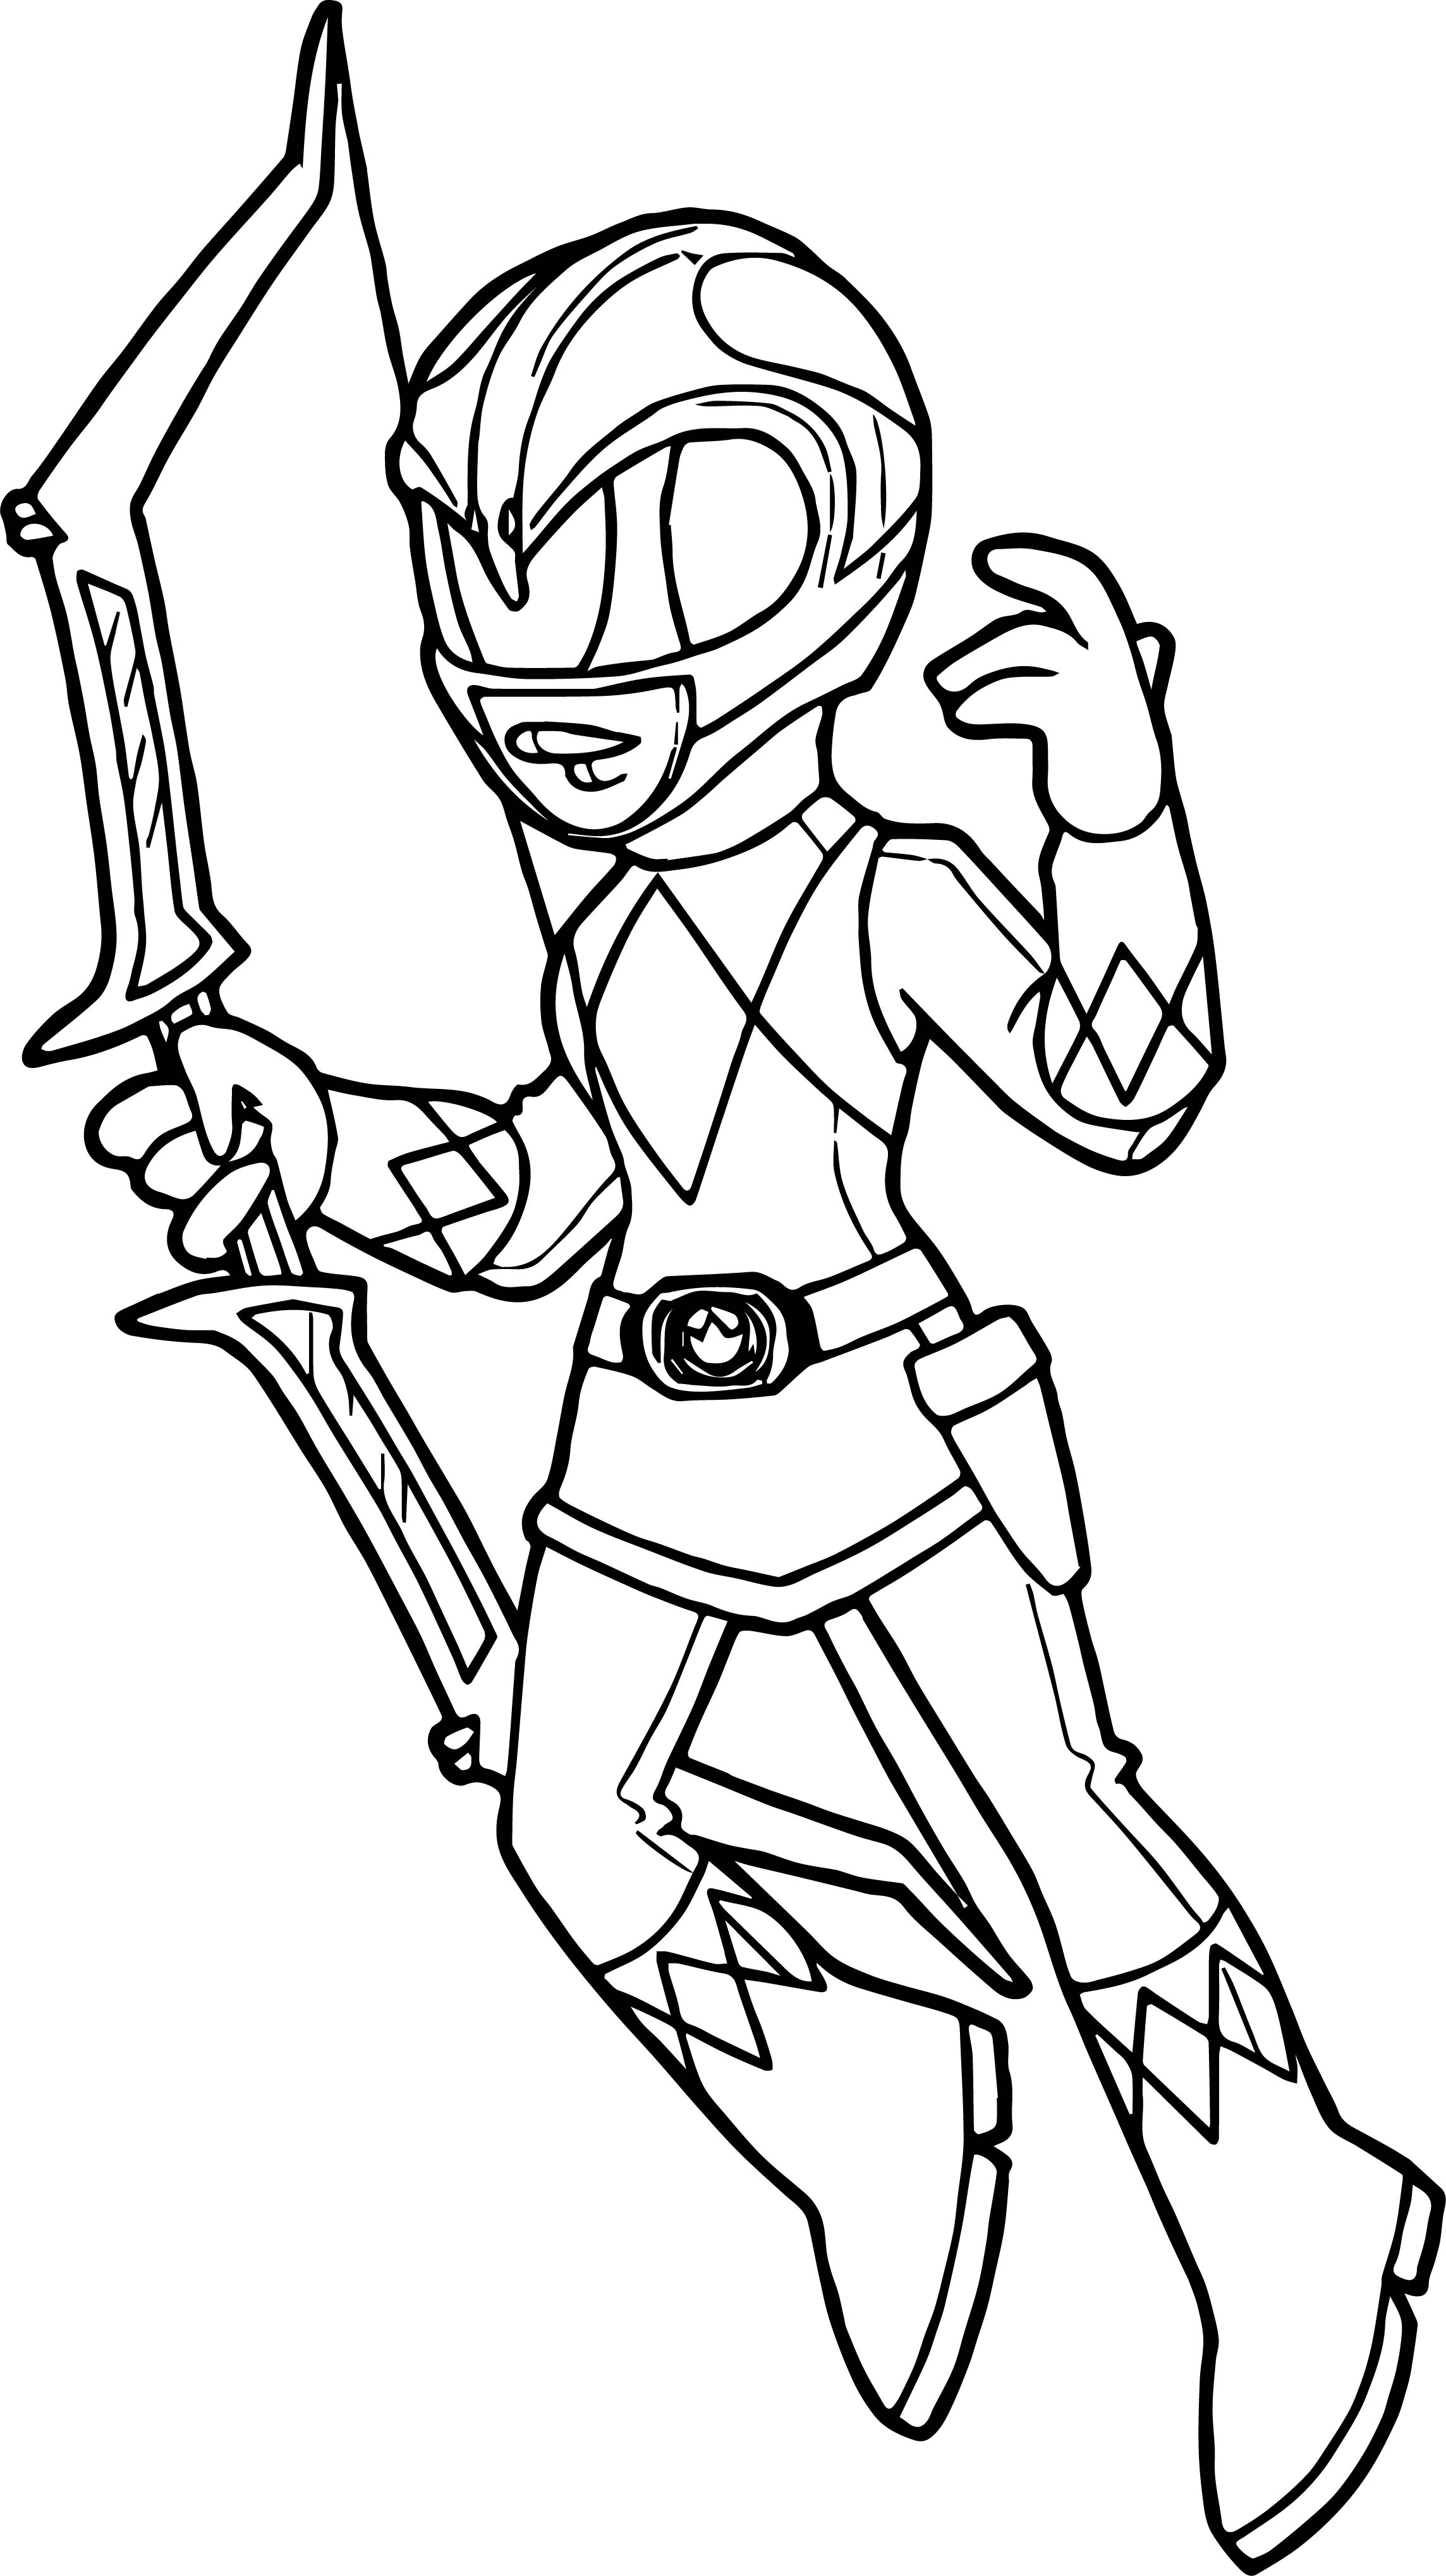 power rangers printable coloring pages power rangers dino charge free coloring pages power pages rangers printable coloring